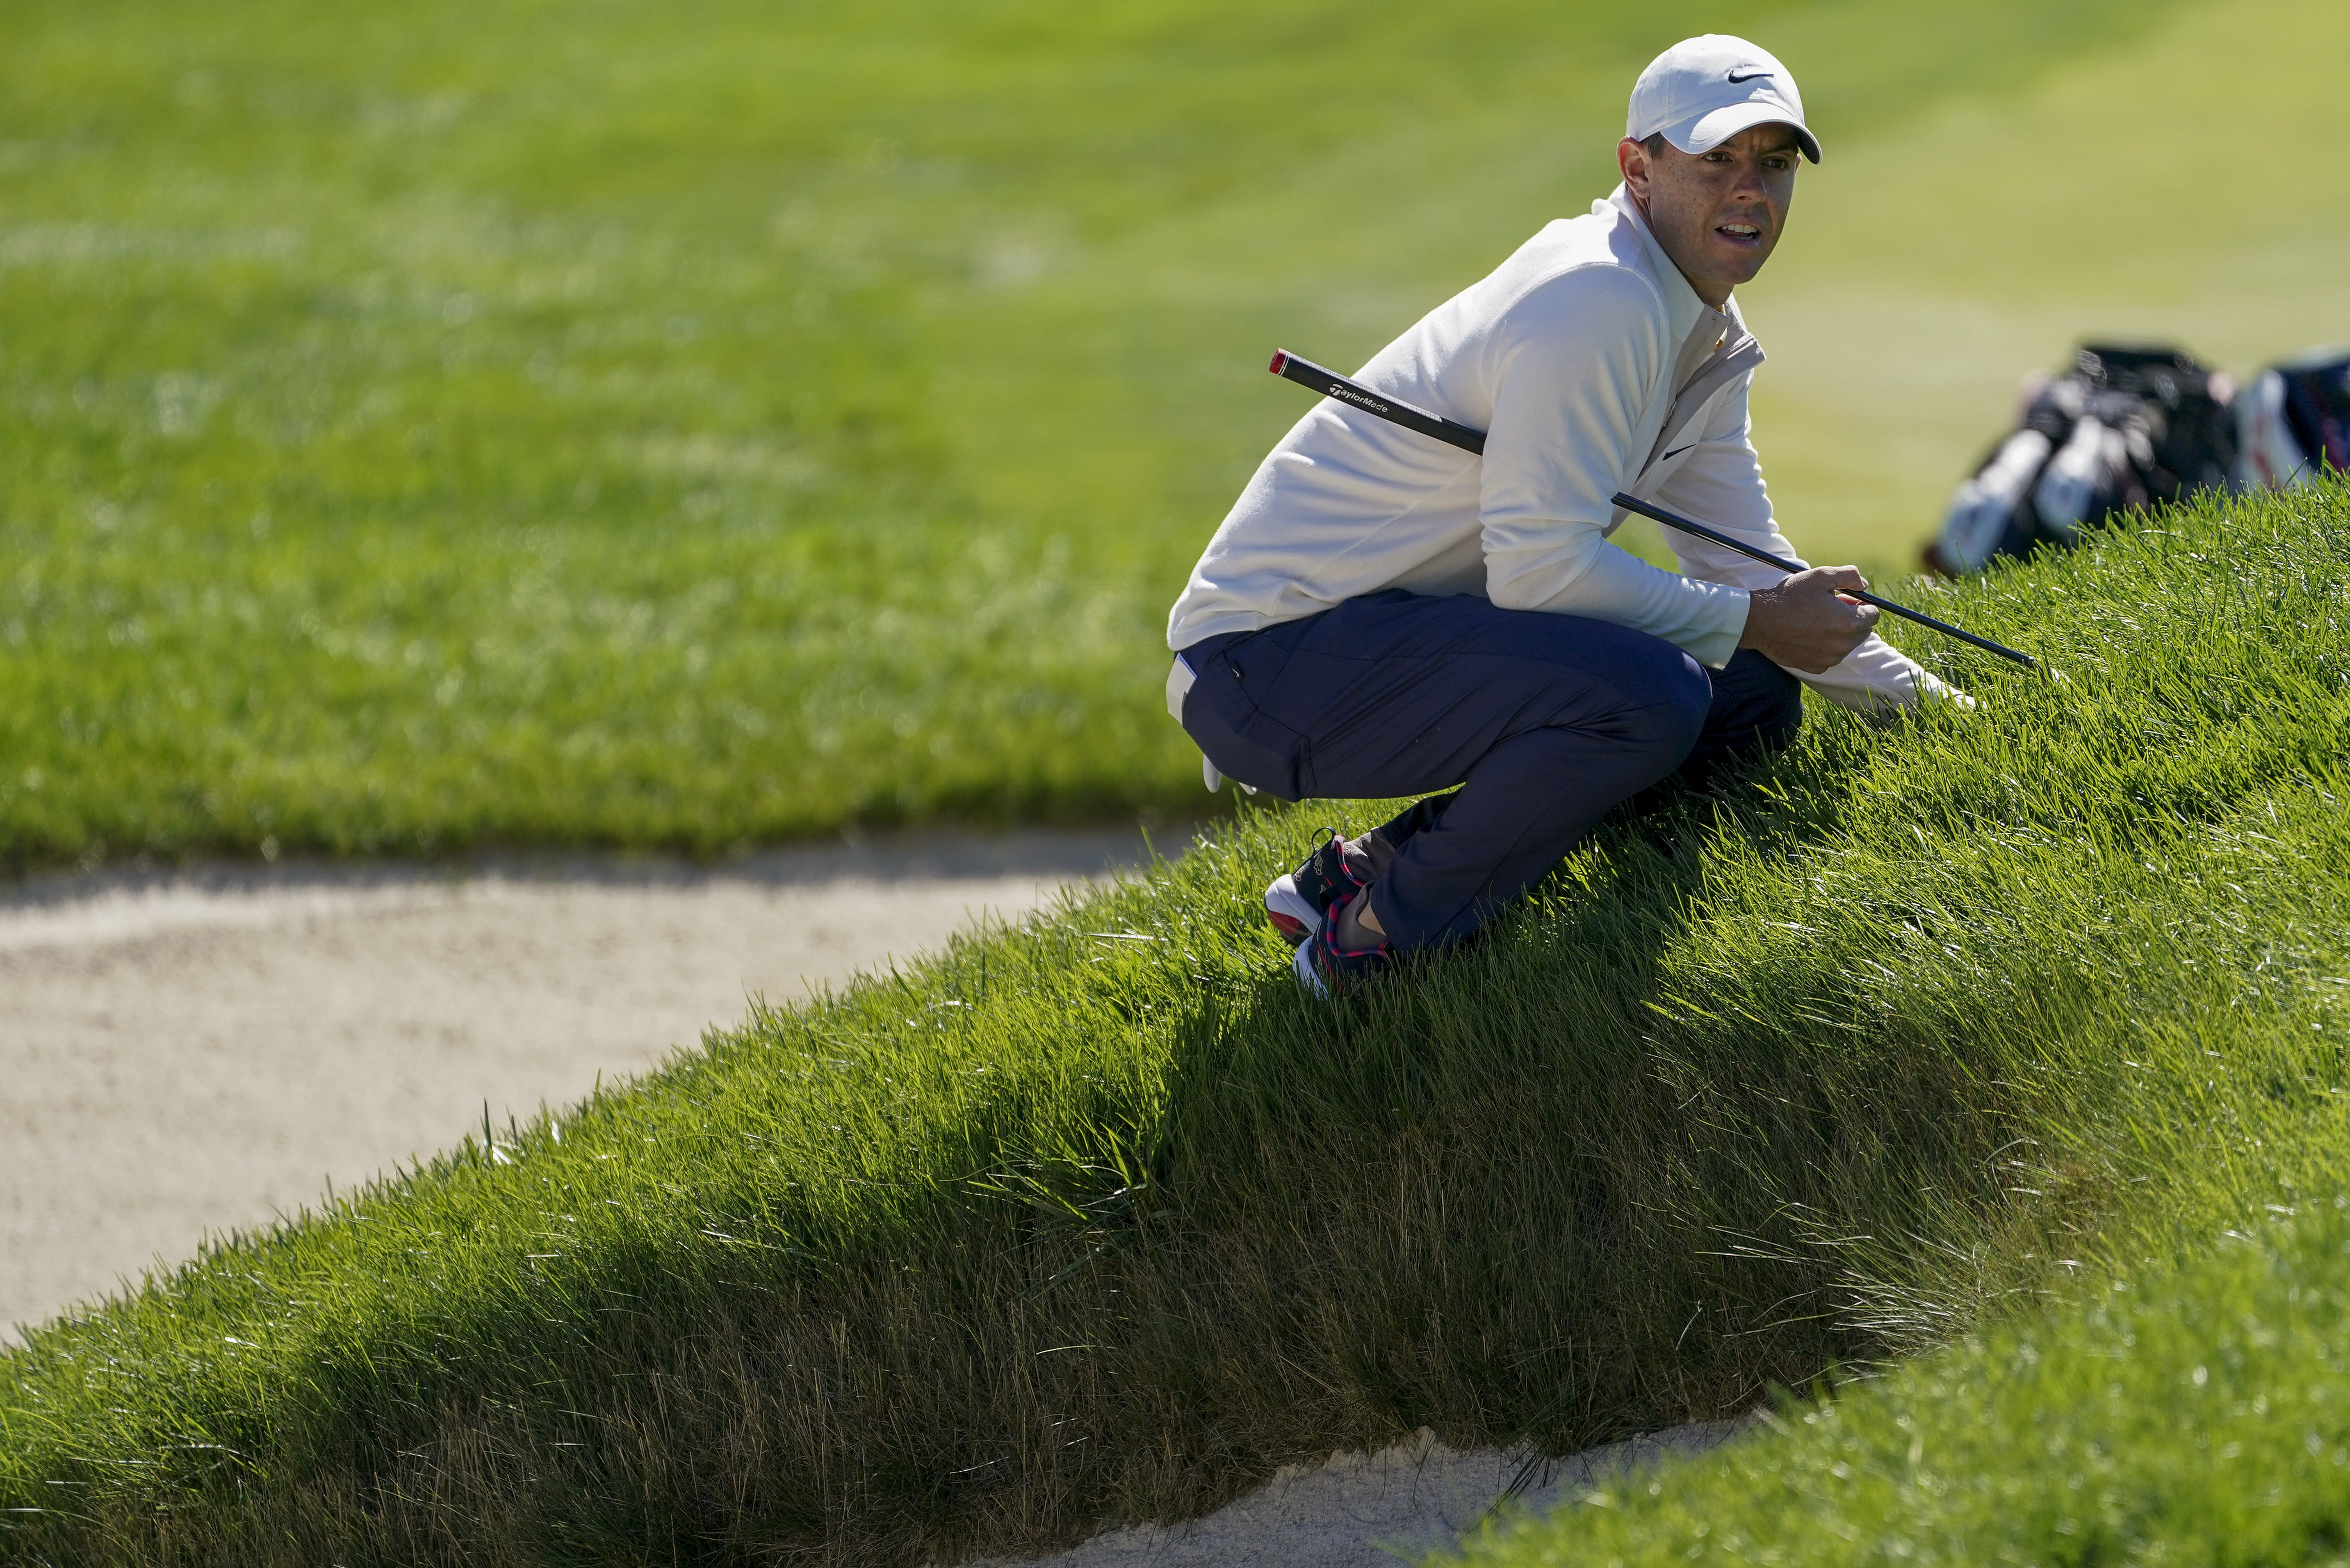 Rory McIlroy, of Northern Ireland, lines up a putt on the first green during the third round of the US Open Golf Championship, Saturday, Sept. 19, 2020, in Mamaroneck, N.Y. (AP Photo/John Minchillo)